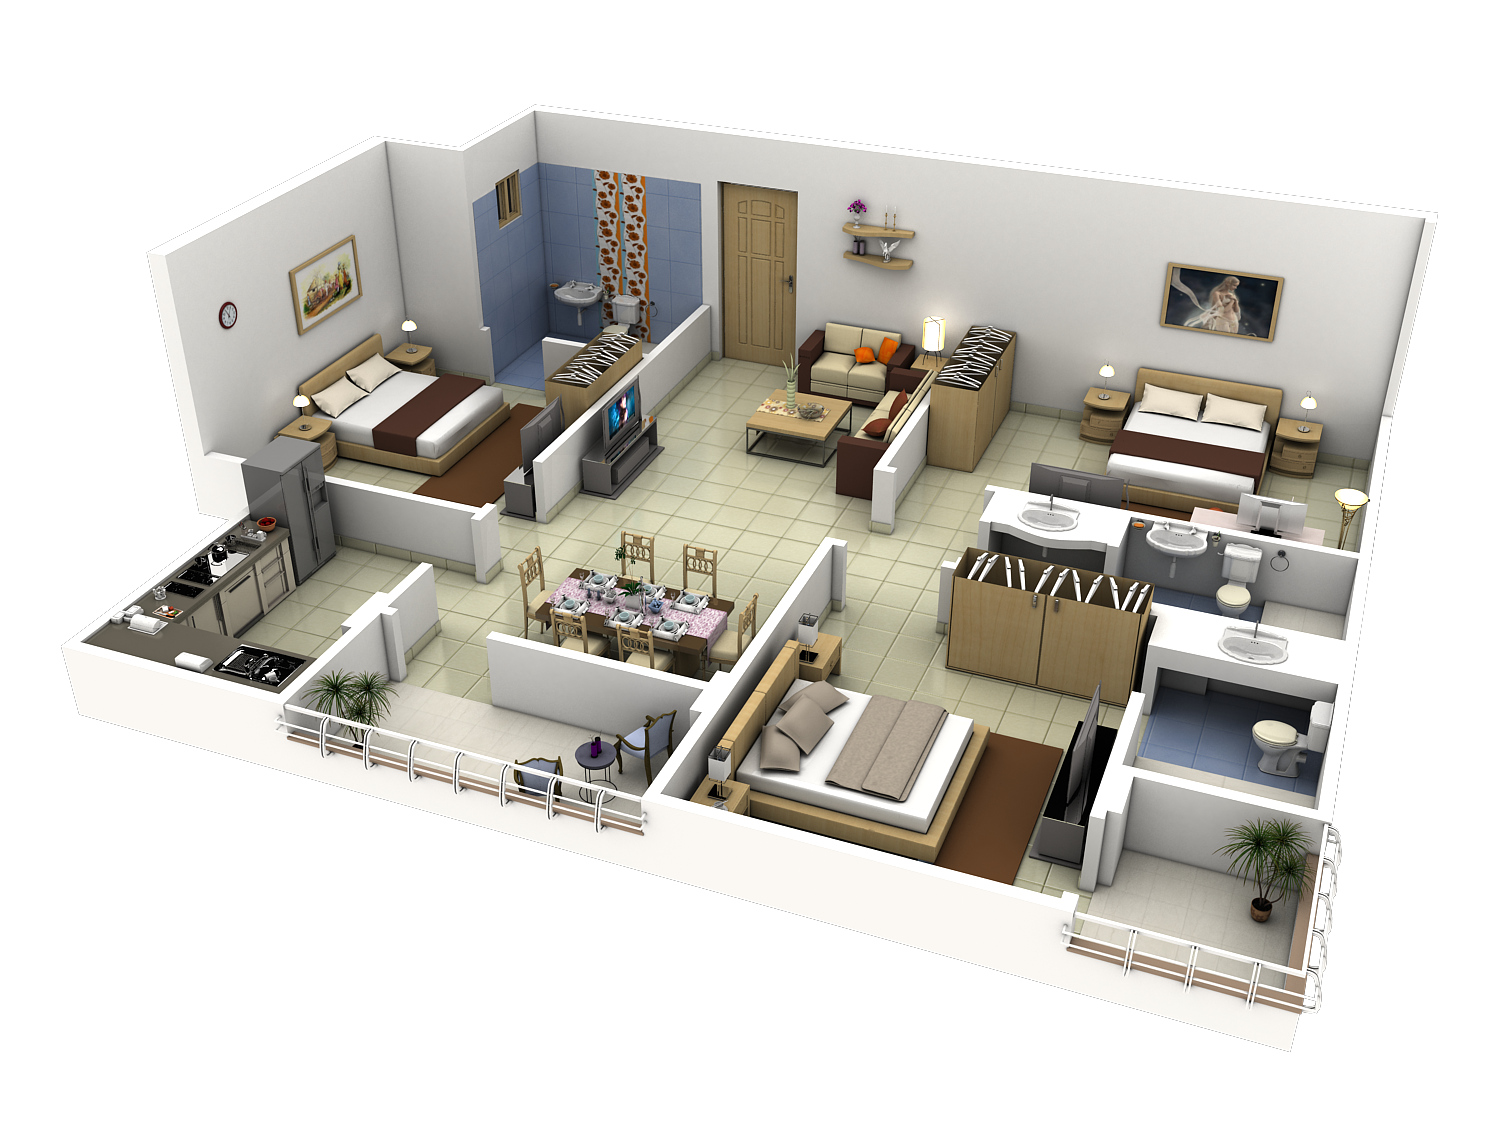 Tech n gen july 2011 for 3d house floor plans